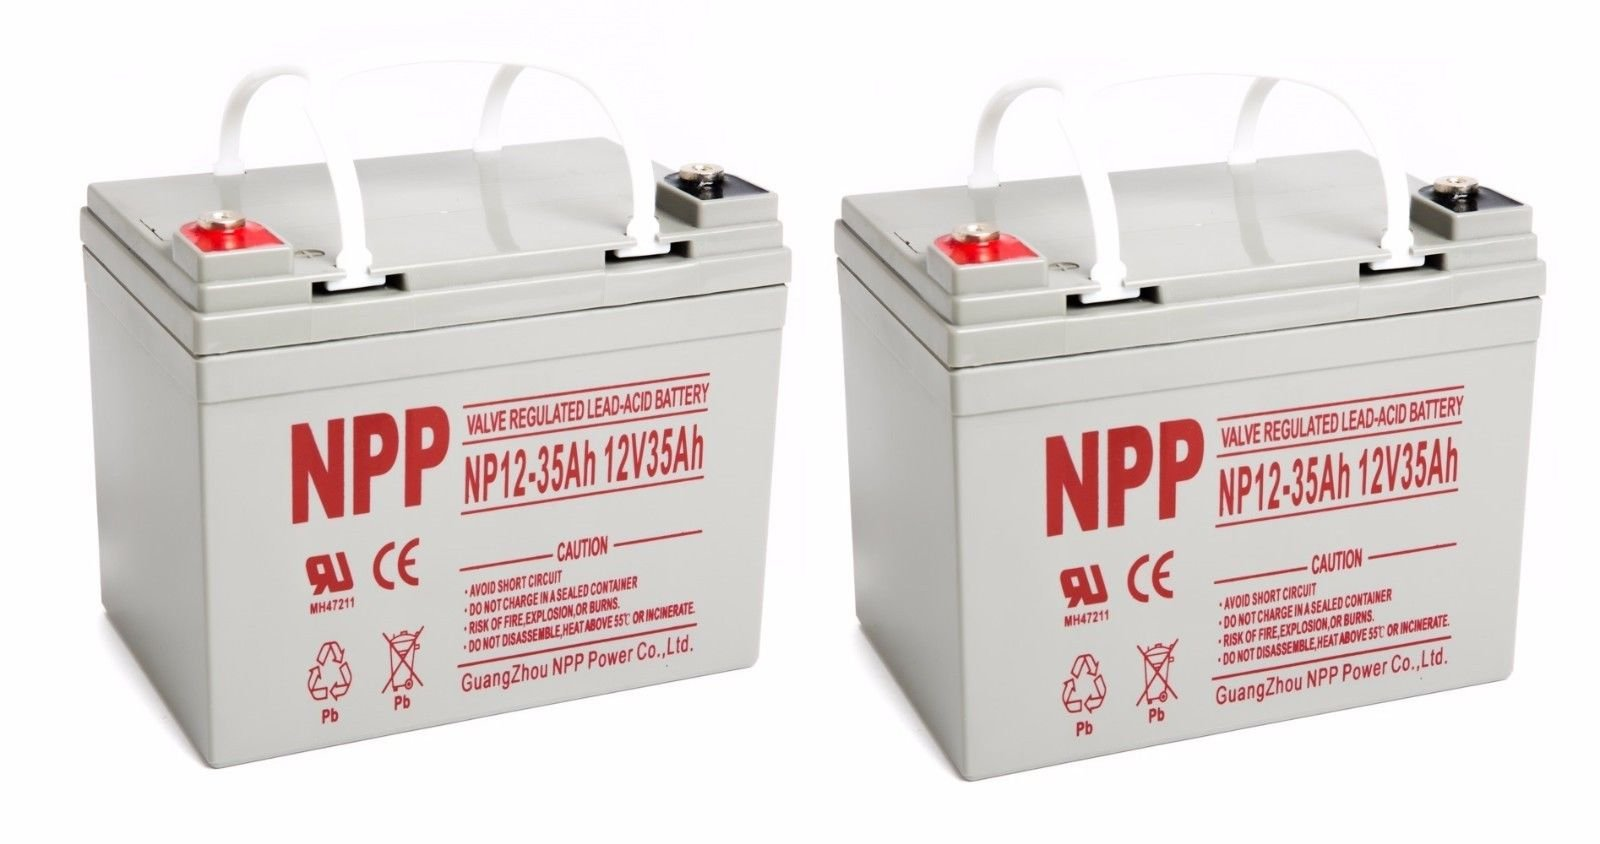 NPP 12V 35 Amp NP12 35Ah Rechargeable Sealed Lead Acid Battery With Button Style Terminals / Pack 2